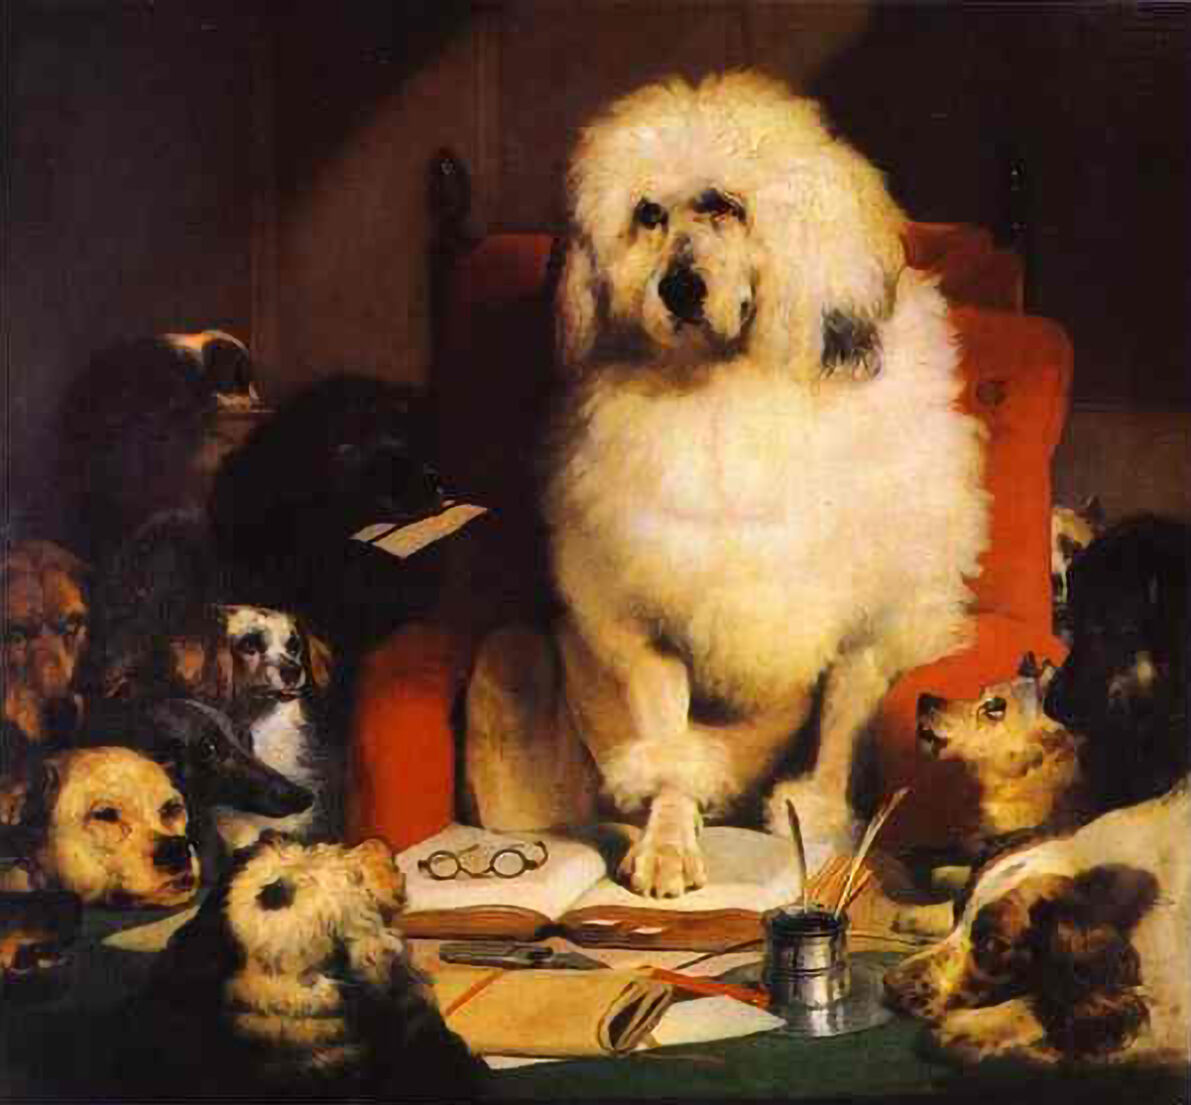 Sir Edwin Landseer, Laying Down the Law, 1840. Photo via Wikimedia Commons.